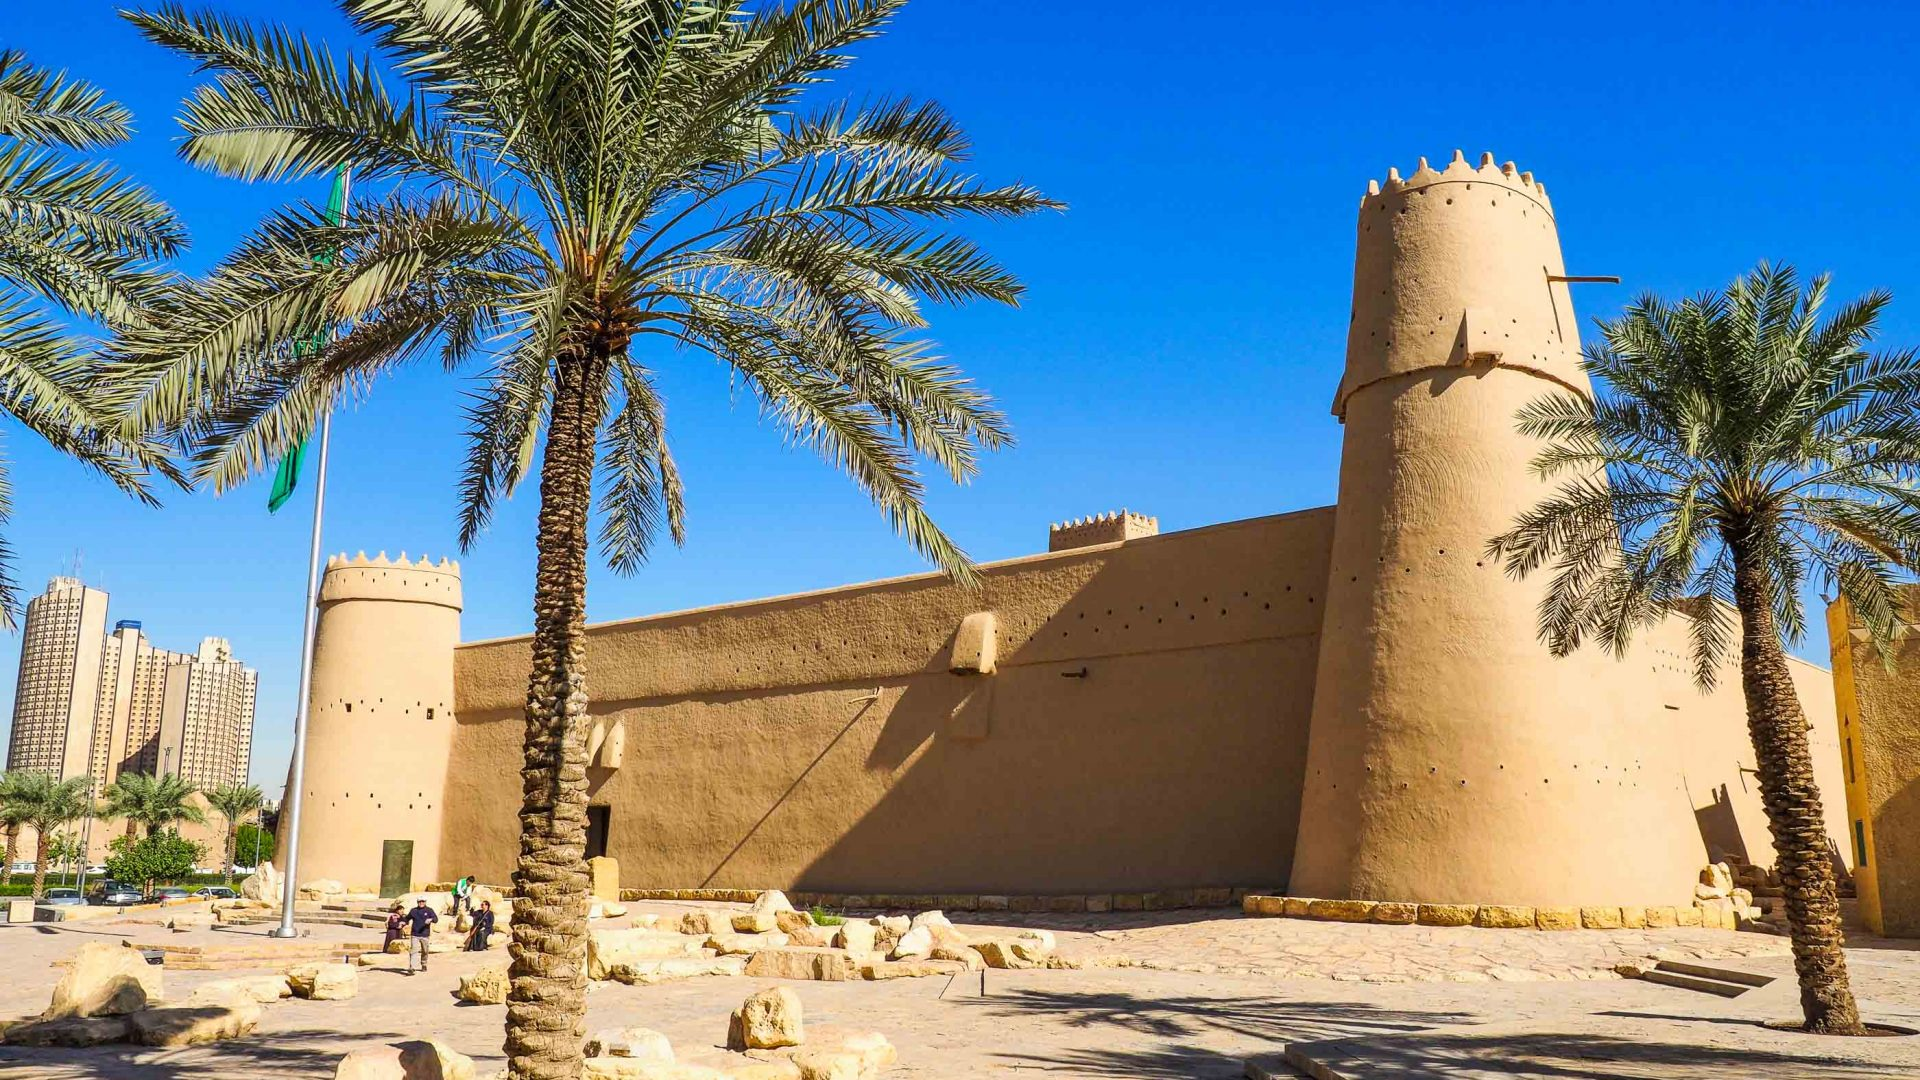 The facade of Masmak Fort in Riyadh, Saudi Arabia.